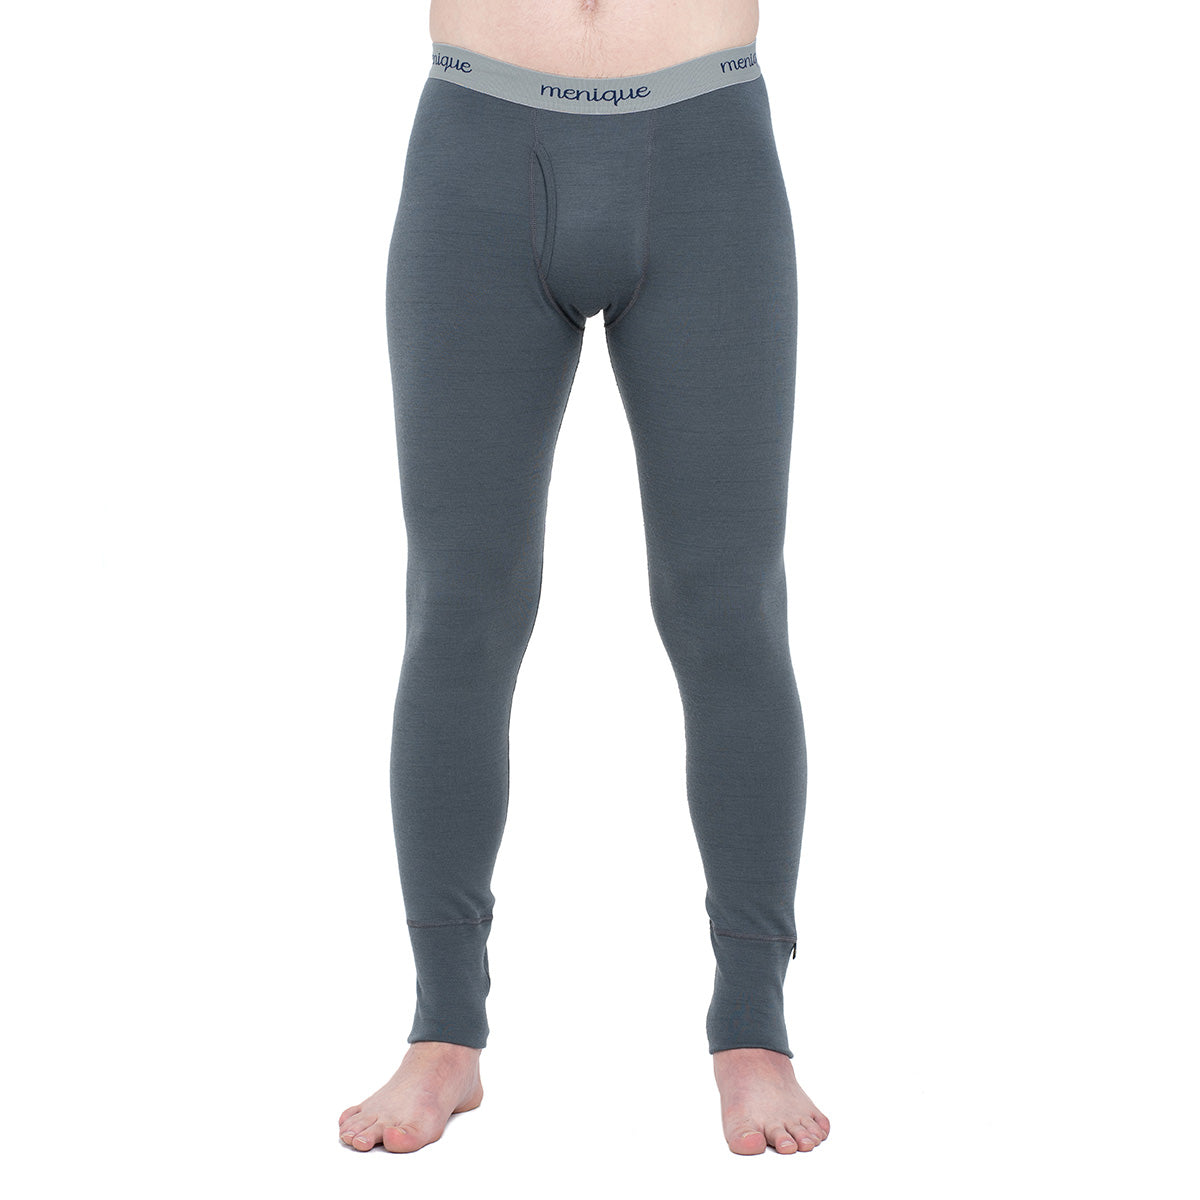 menique Men's Merino 250 Pants RB Perfect Grey Color